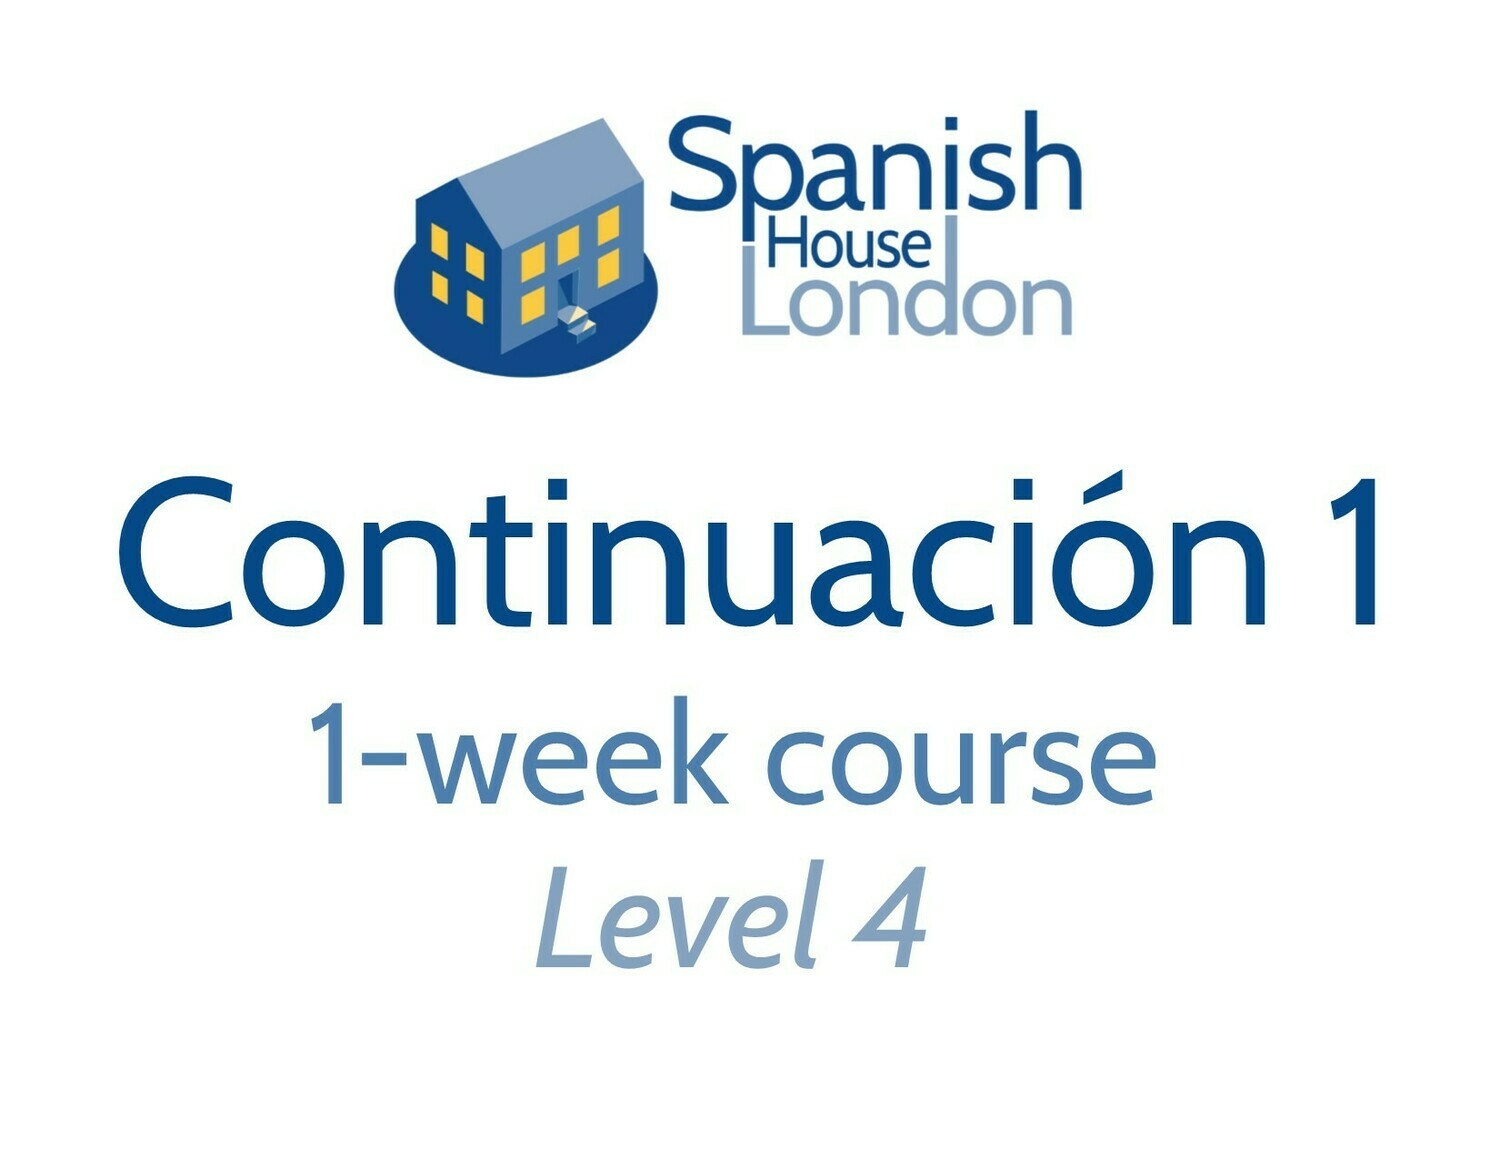 Continuacion 1 One-Week Intensive Course starting on 3rd February at 10am in Clapham North